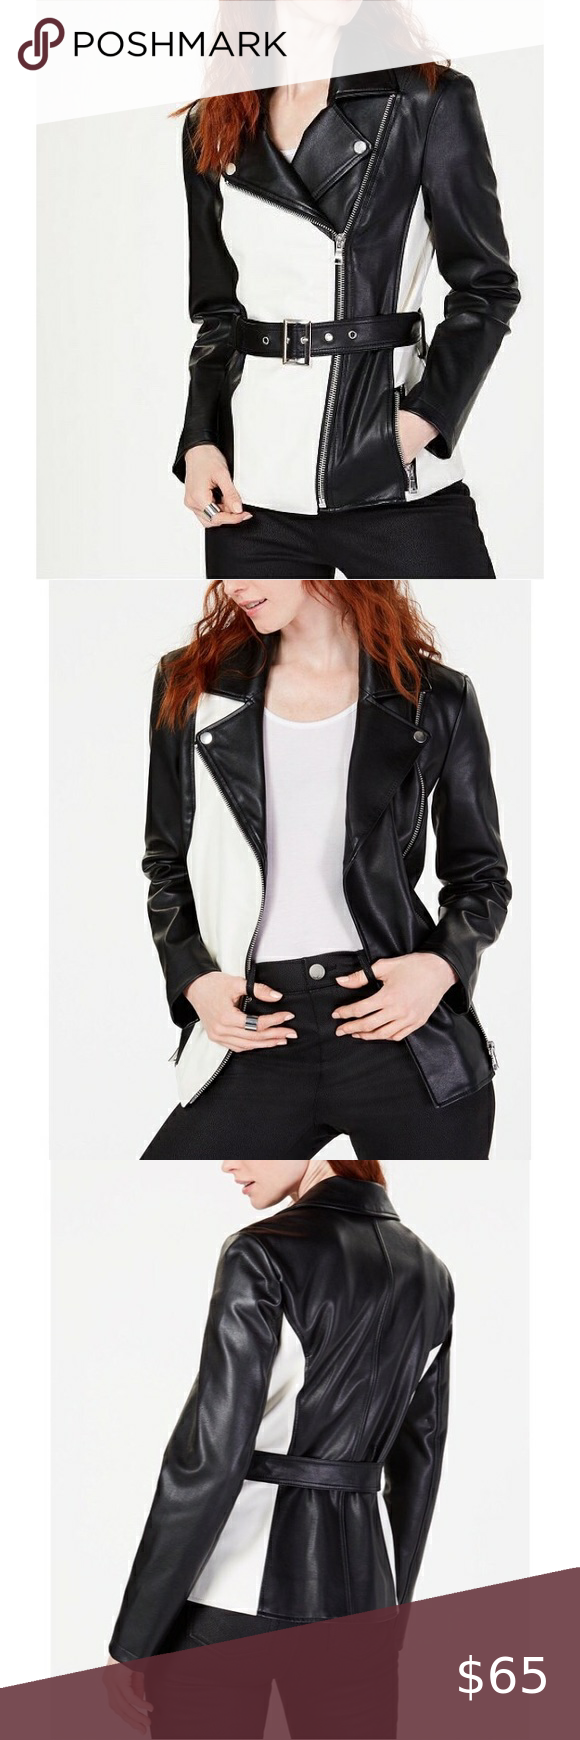 I N C Colorblocked Faux Leather Jacket L Nwt Leather Jacket Faux Leather Jackets Clothes Design [ 1740 x 580 Pixel ]